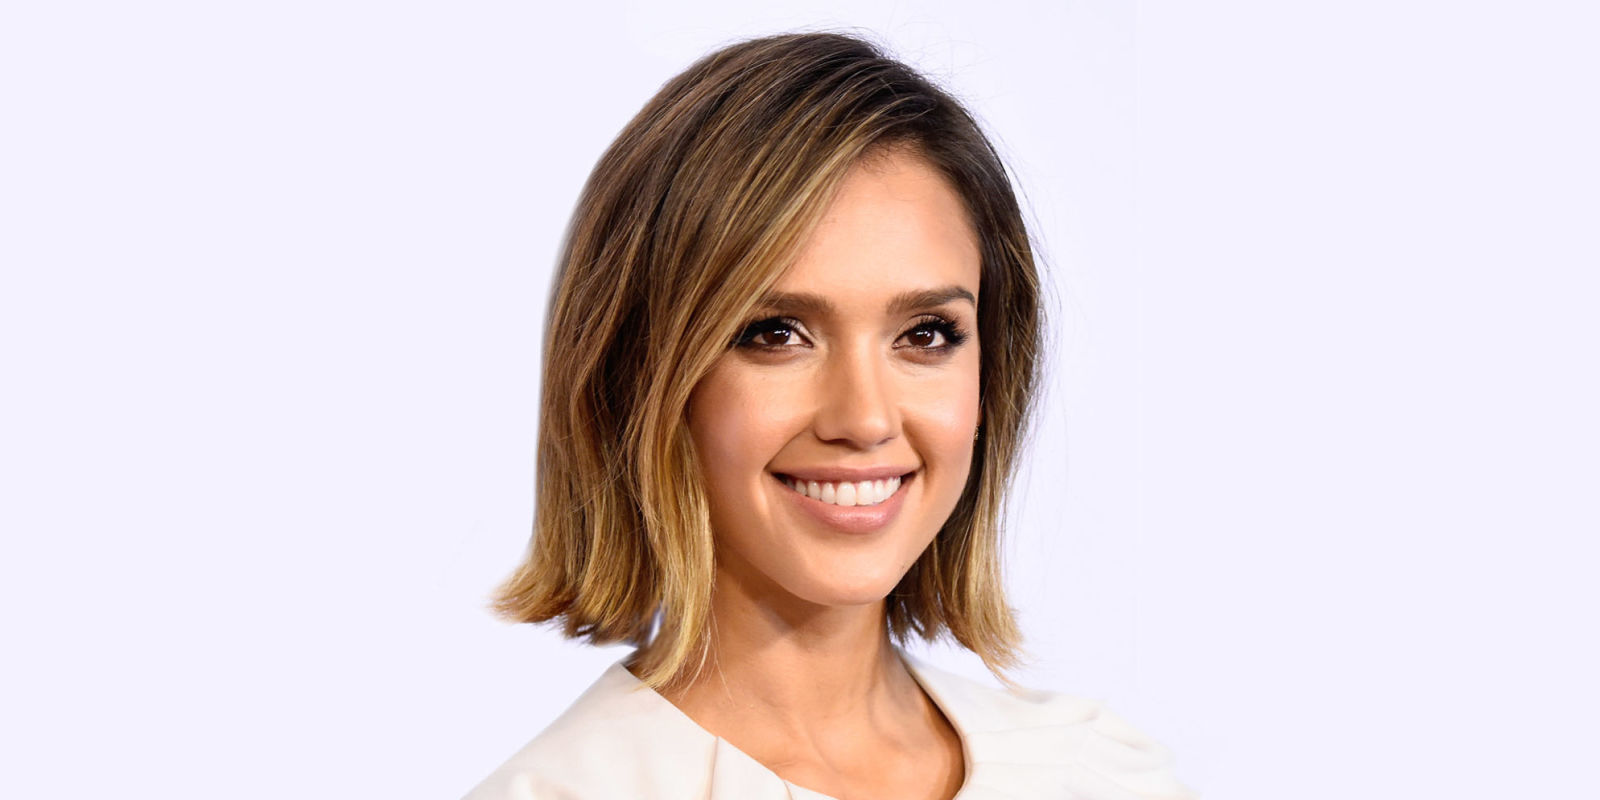 jessica alba filmsjessica alba 2017, jessica alba 2016, jessica alba style, jessica alba films, jessica alba hair, jessica alba movies, jessica alba street style, jessica alba wiki, jessica alba instagram, jessica alba net worth, jessica alba 2007, jessica alba make up, jessica alba site, jessica alba filmography, jessica alba wikipedia, jessica alba style 2017, jessica alba kino, jessica alba наркоз, jessica alba 2015, jessica alba imdb